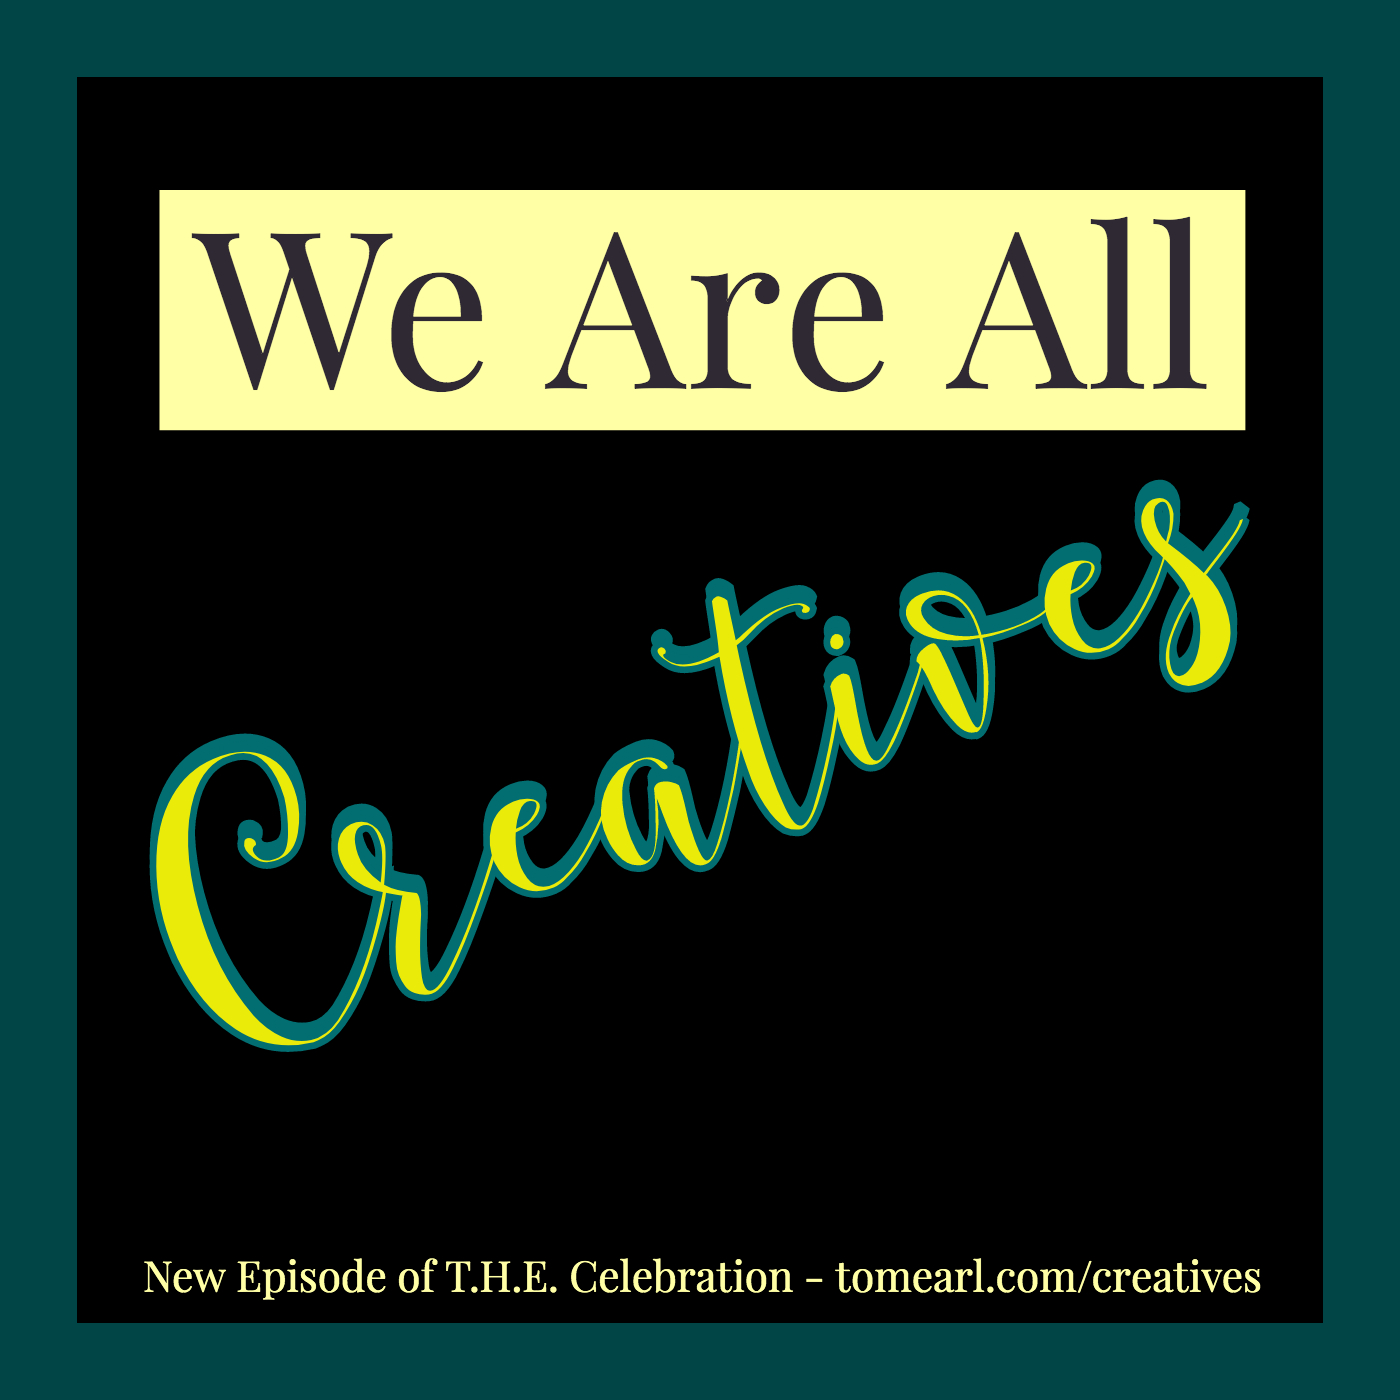 Creatives Podcast Copy 3.jpg